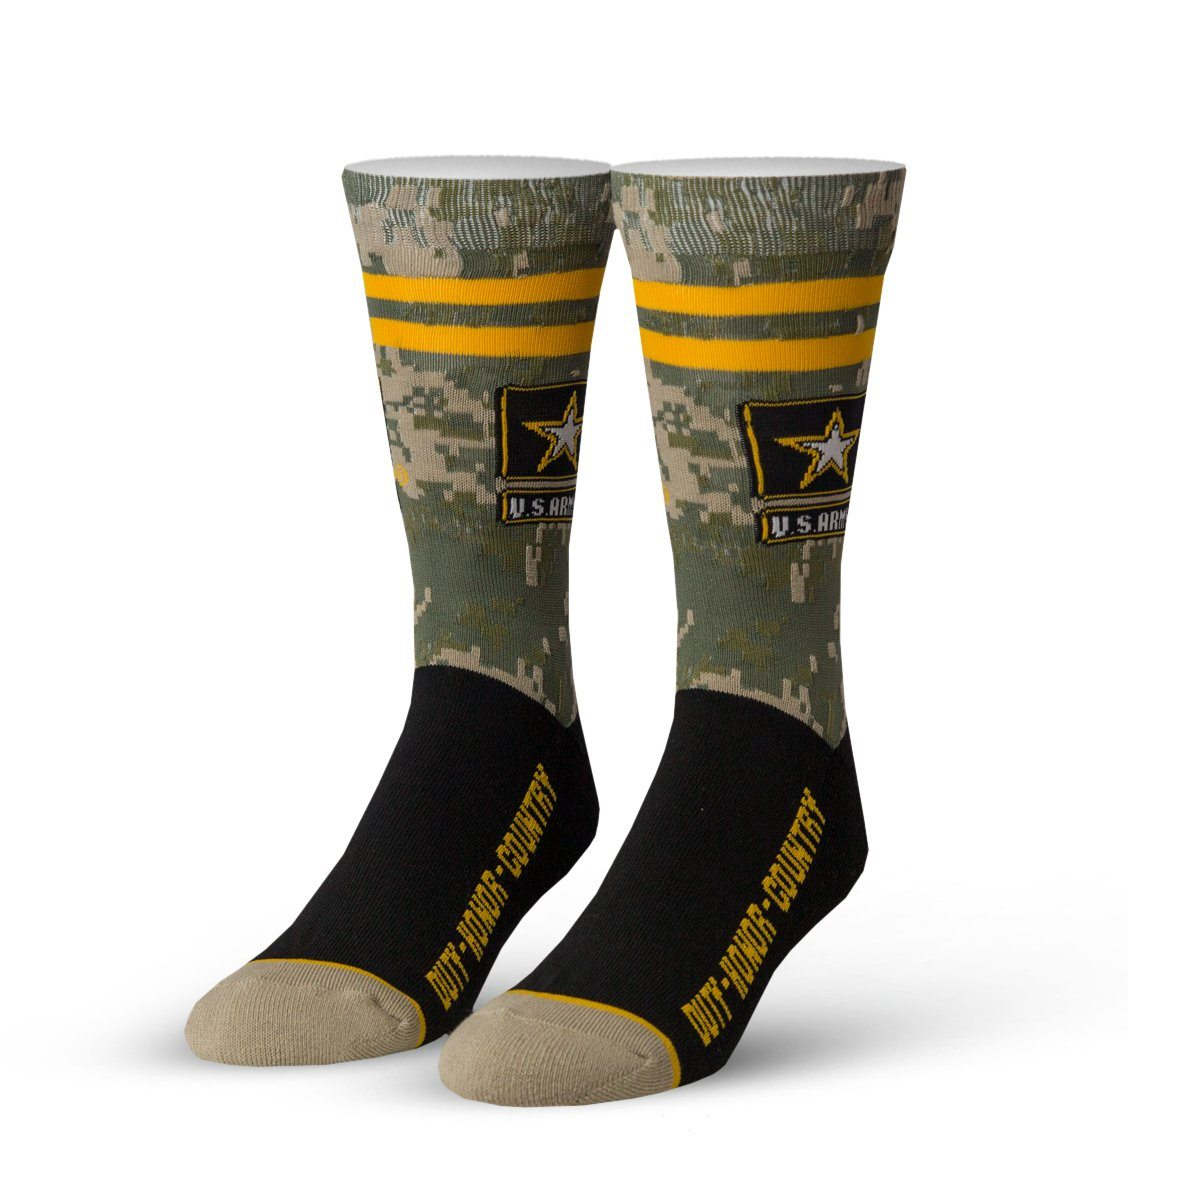 Cool Socks - Duty, Honor, Country Crew Socks | Men's - Knock Your Socks Off